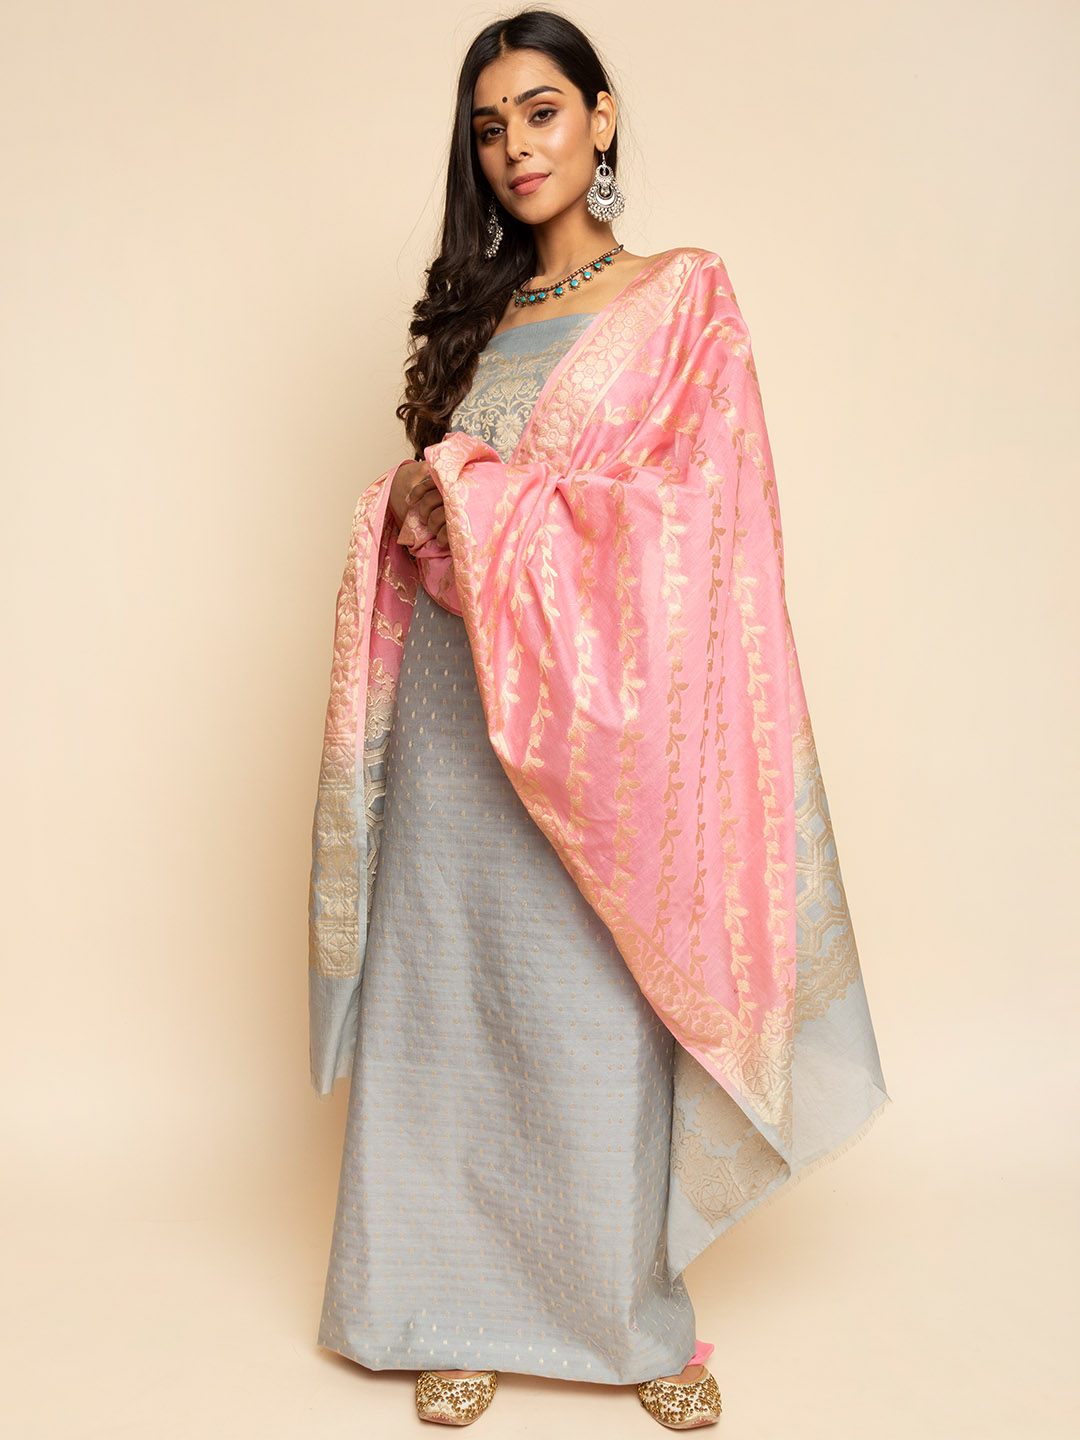 Grey Colour Chanderi Silk Banarsi Suit with heavy embroidered pink Dupatta and straight pants